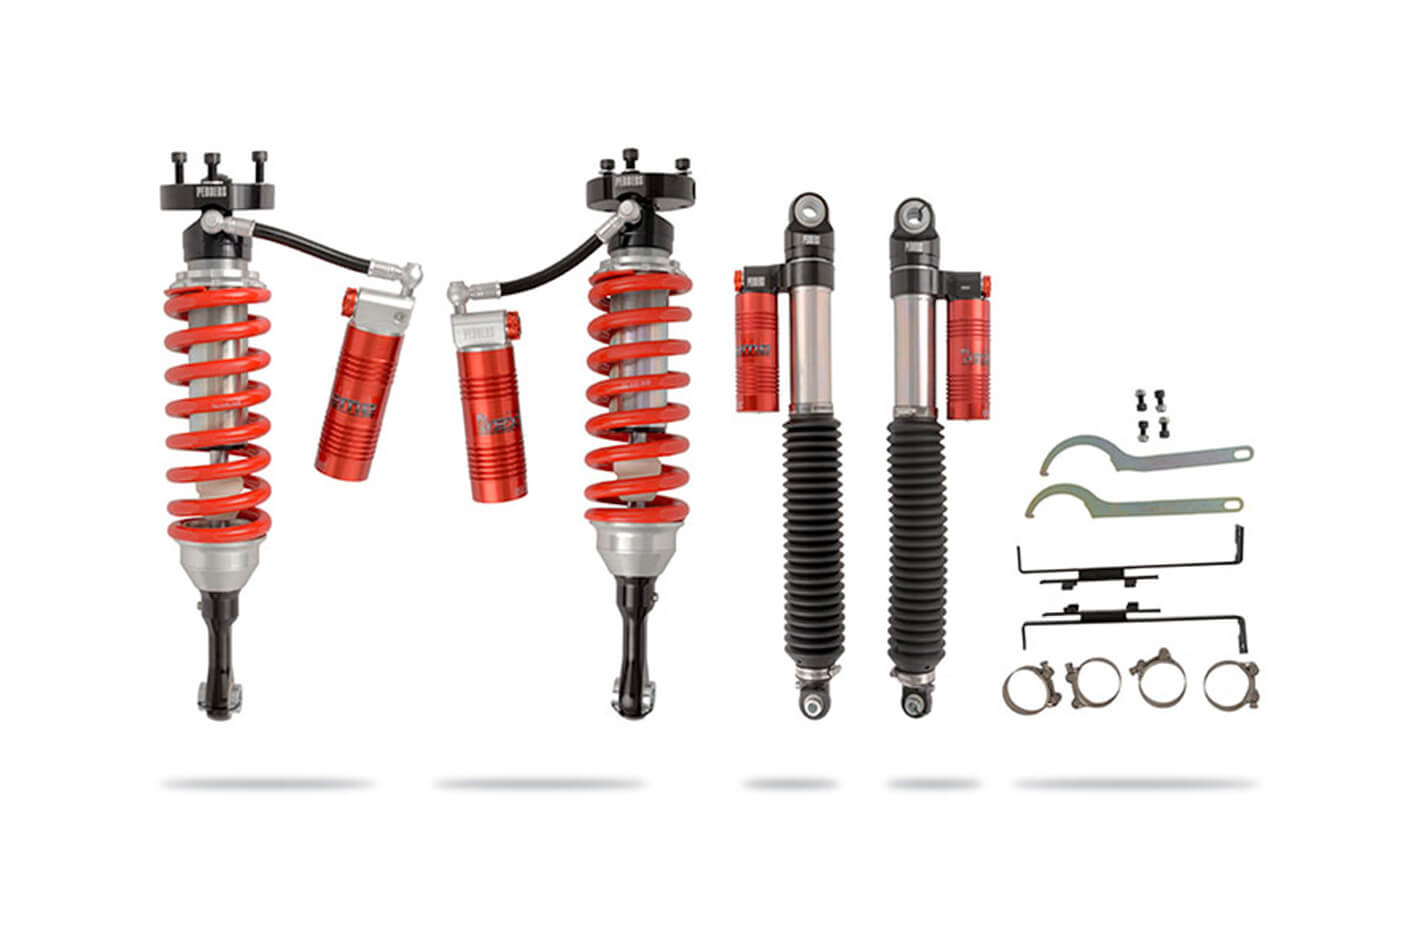 eXtreme-coilovers